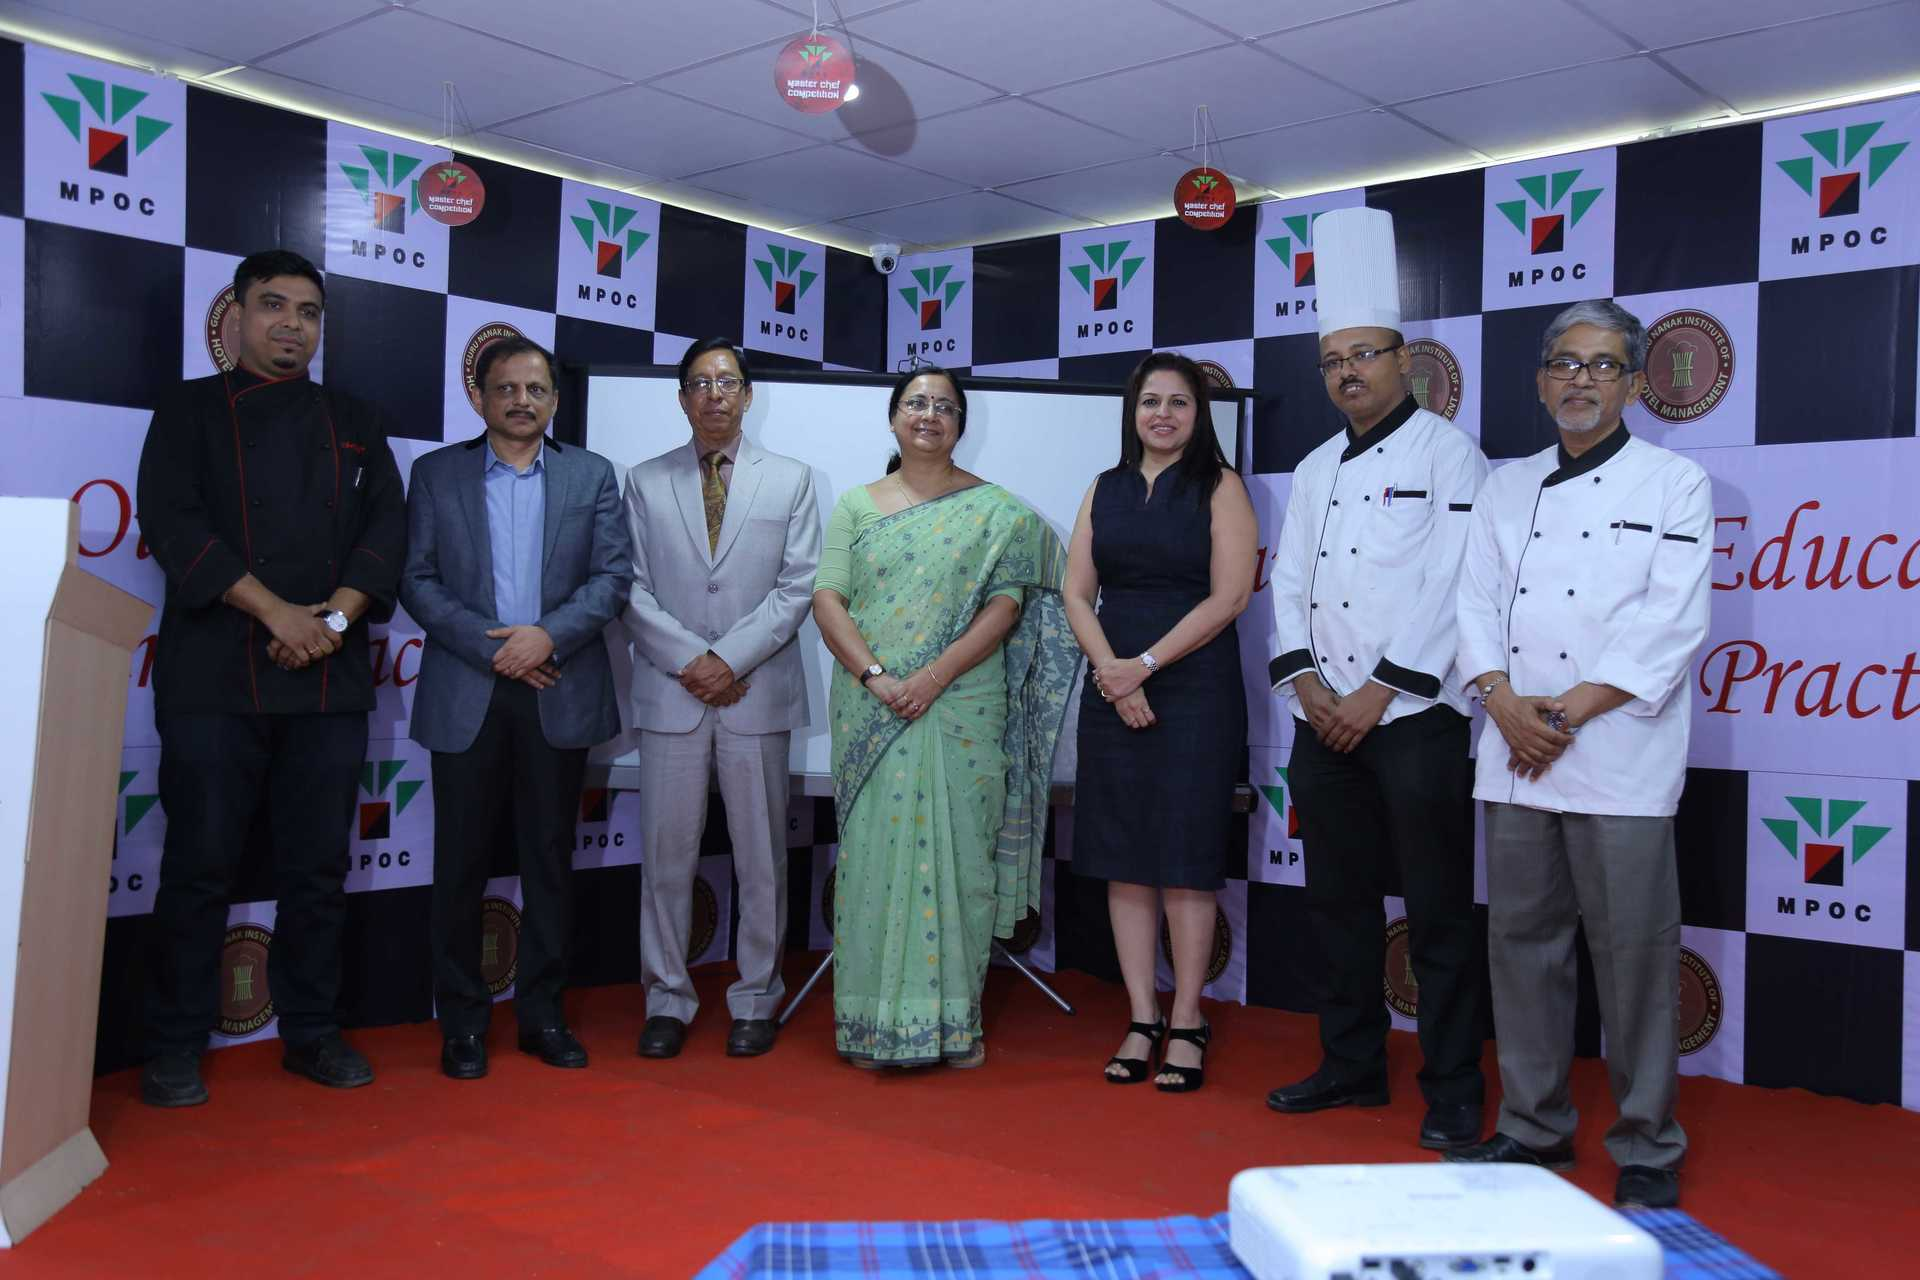 All Things Sassy - Chef Riju Kumar Dey, Dr Rajeev Churi, Principal Xavier Gomes, Prof Mahua Ghosh, Bhavna Shah, Chef Avijit Ray, Chef Mukul Sarkar